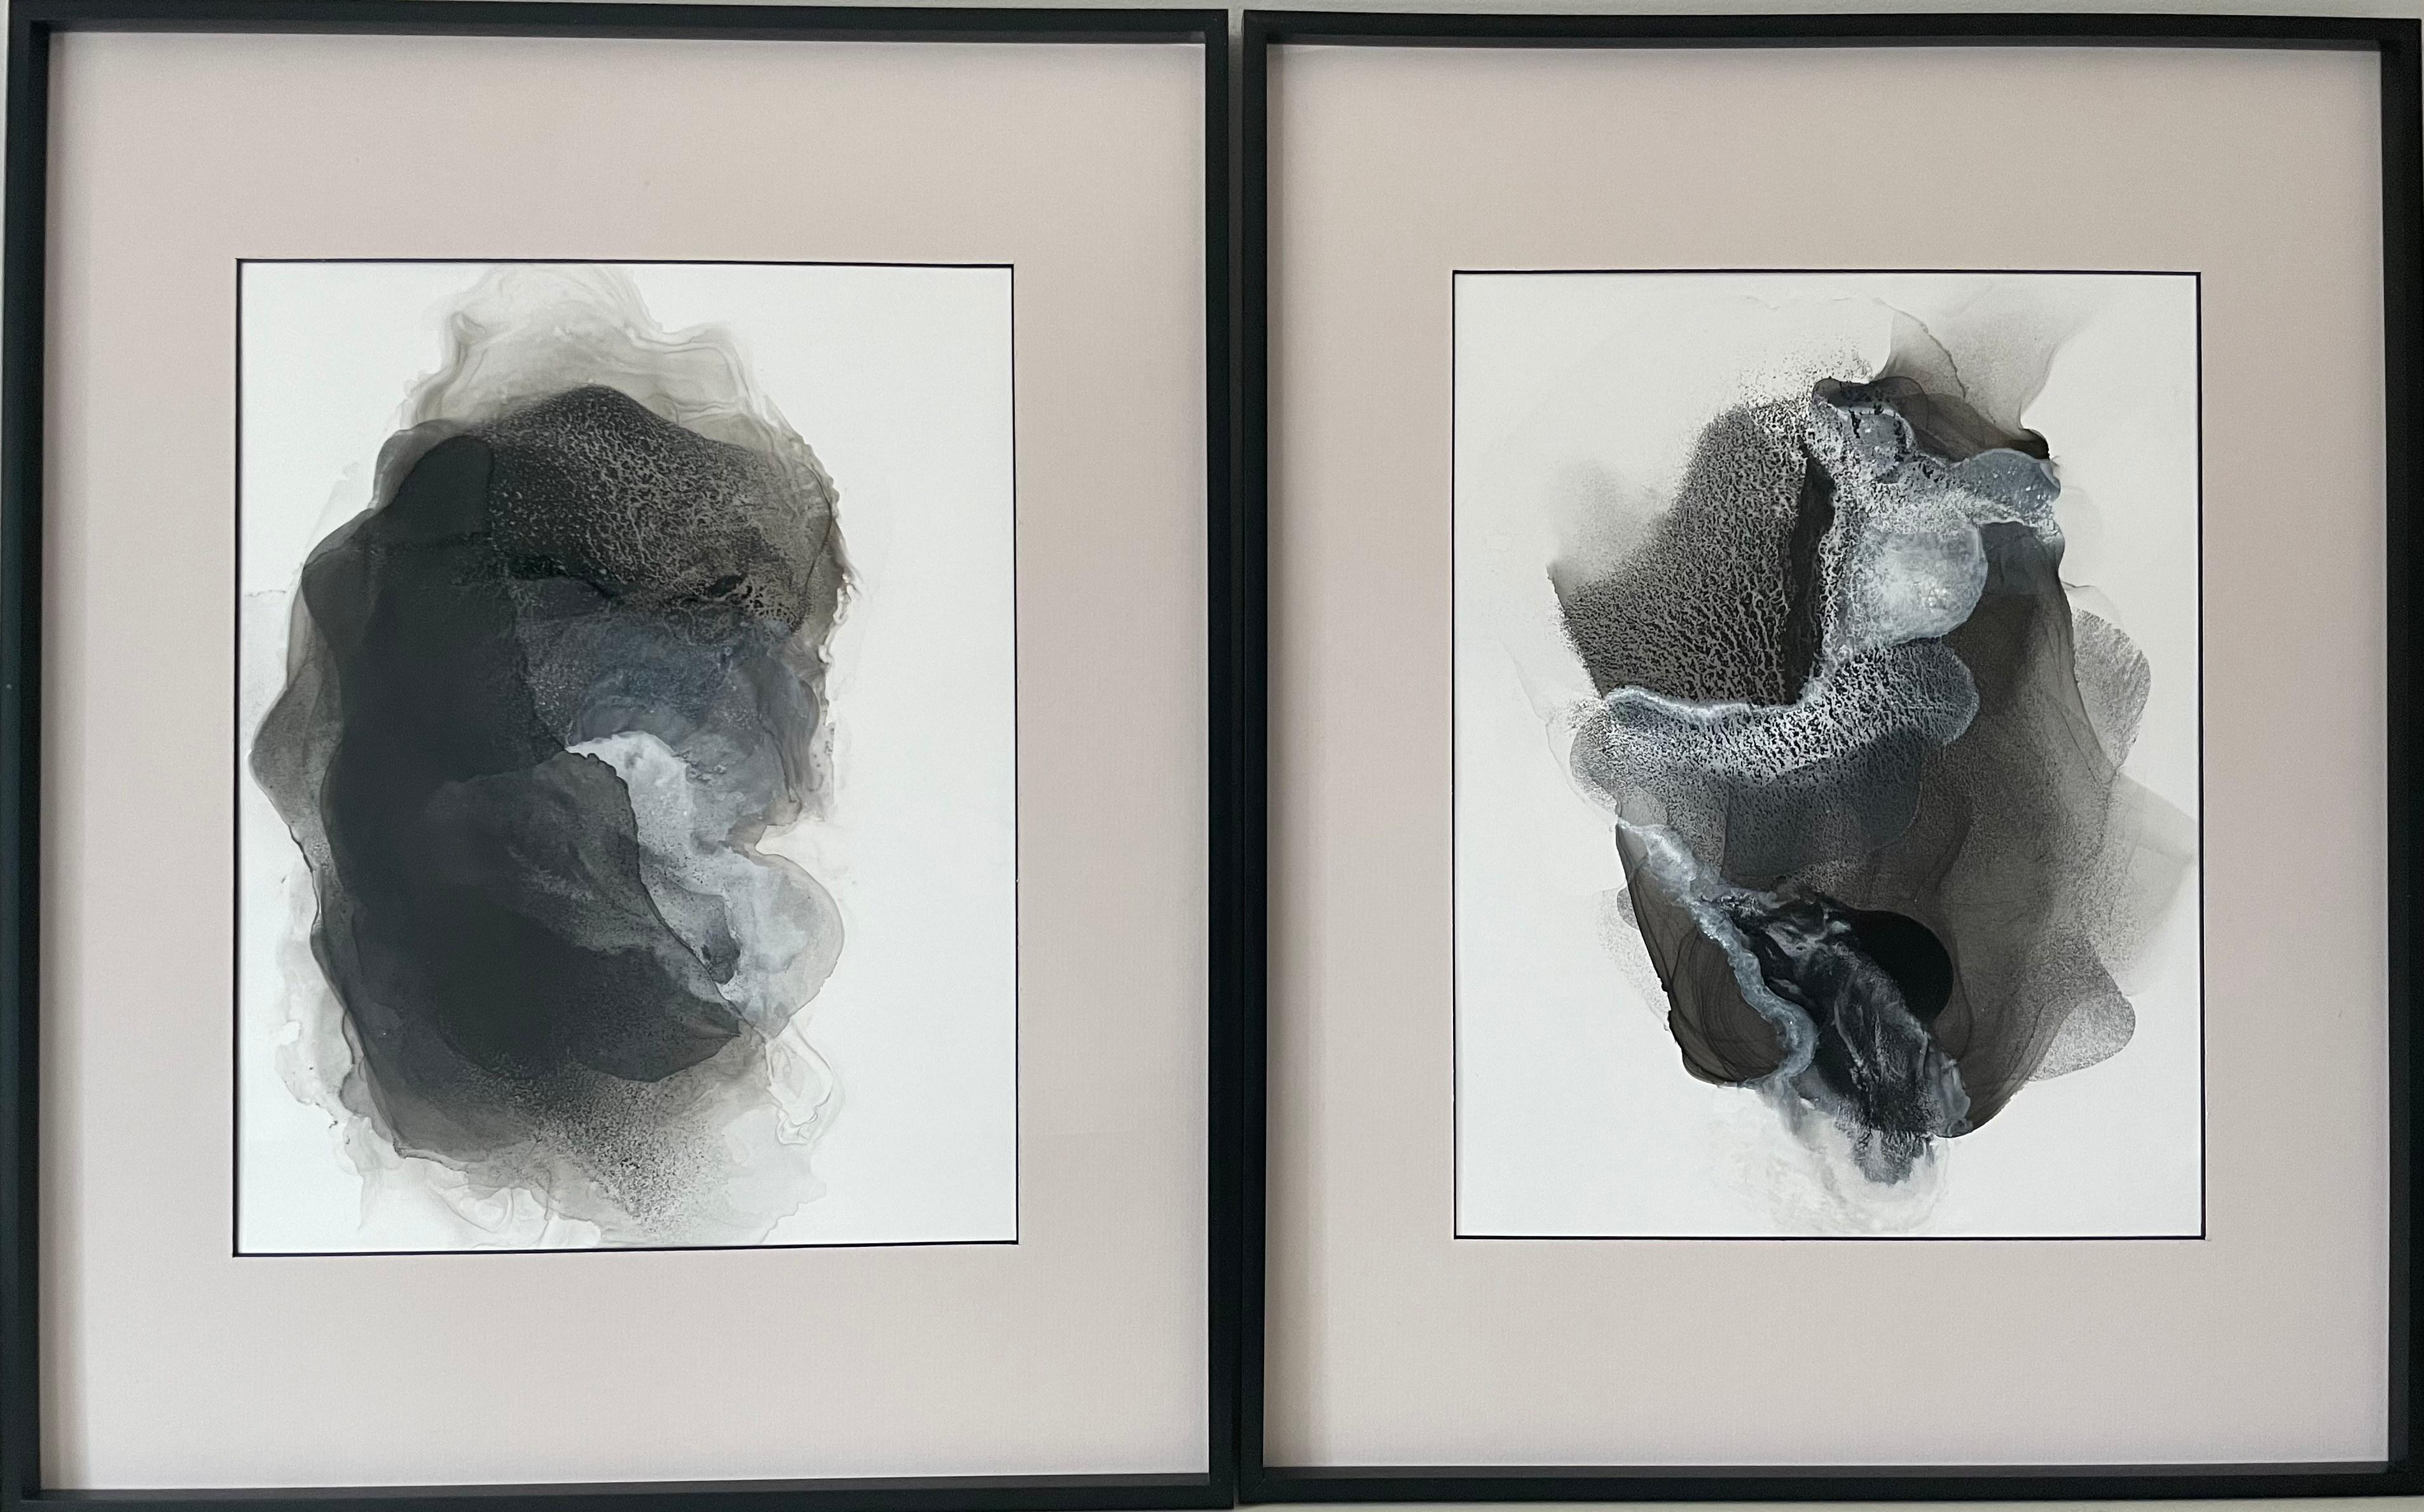 Haze II - abstract painting, made in beige, black and white color